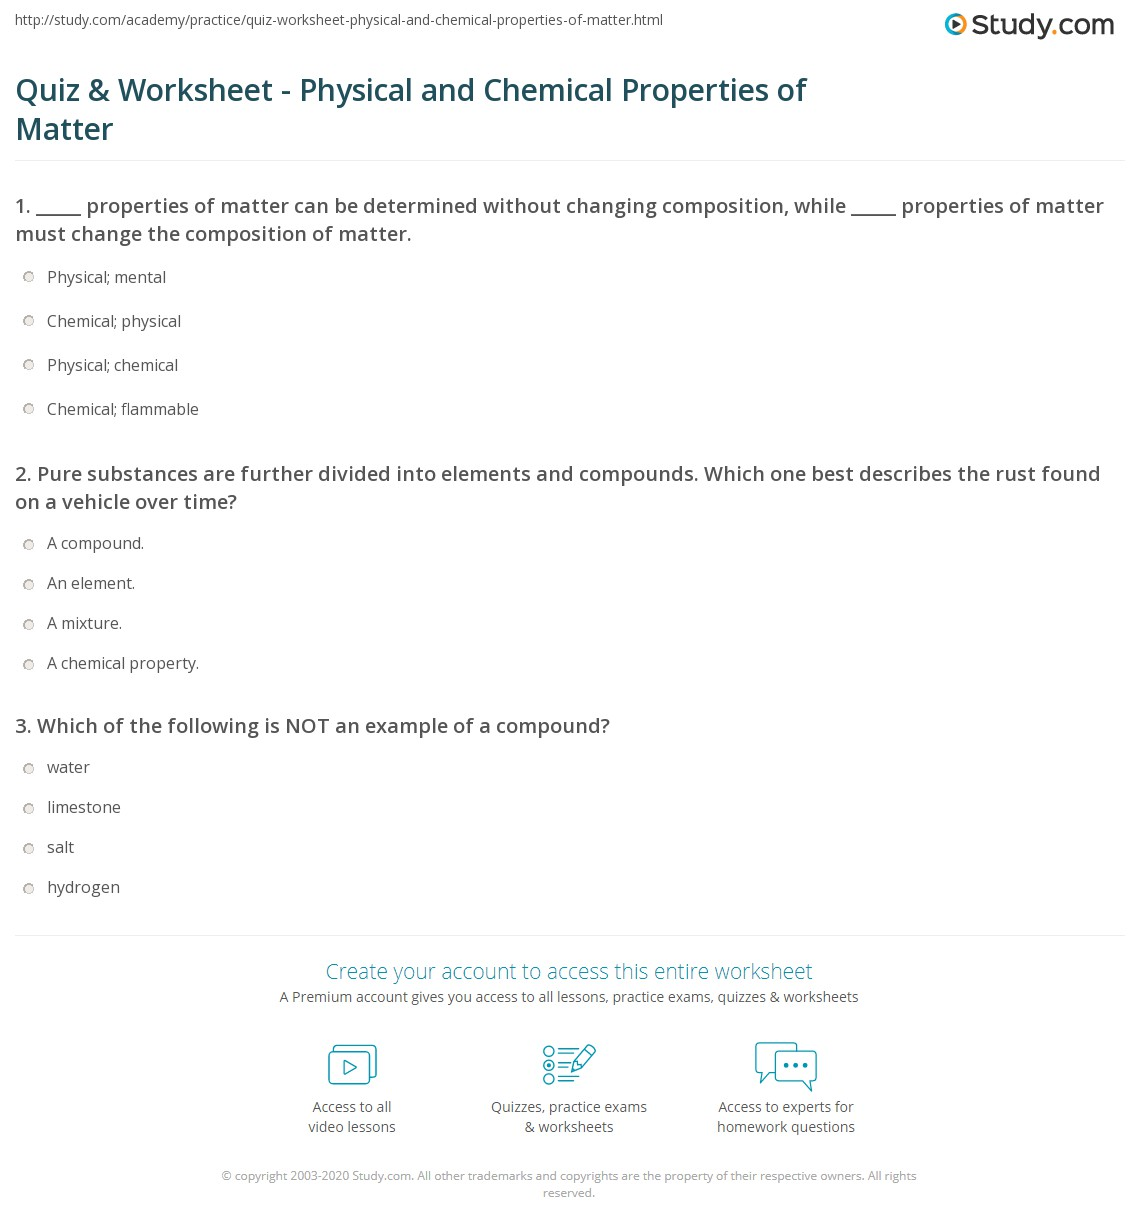 Printables Physical And Chemical Properties Of Matter Worksheet quiz worksheet physical and chemical properties of matter print worksheet